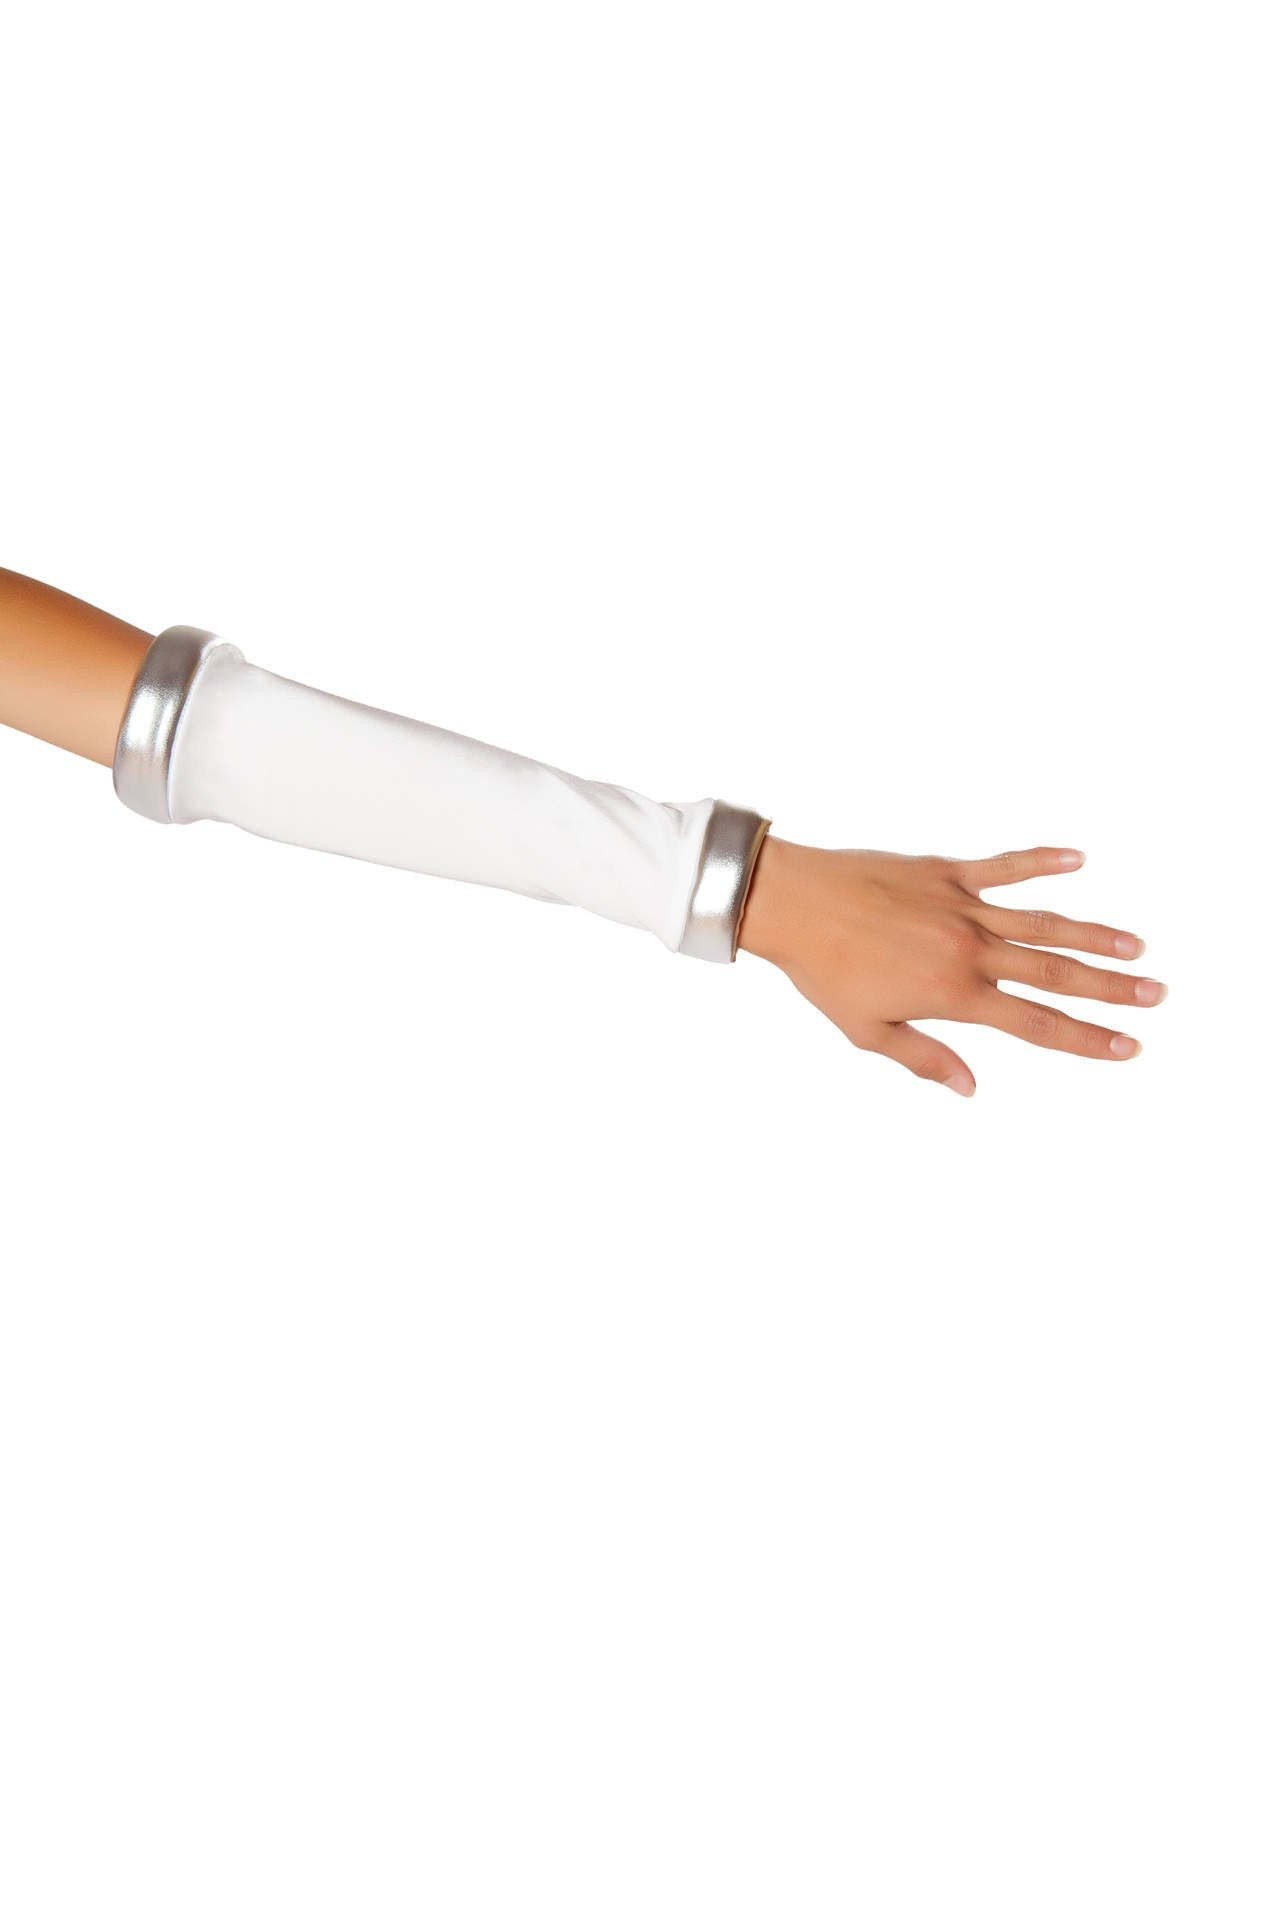 10077GL - White/Silver Space Commander Gloves